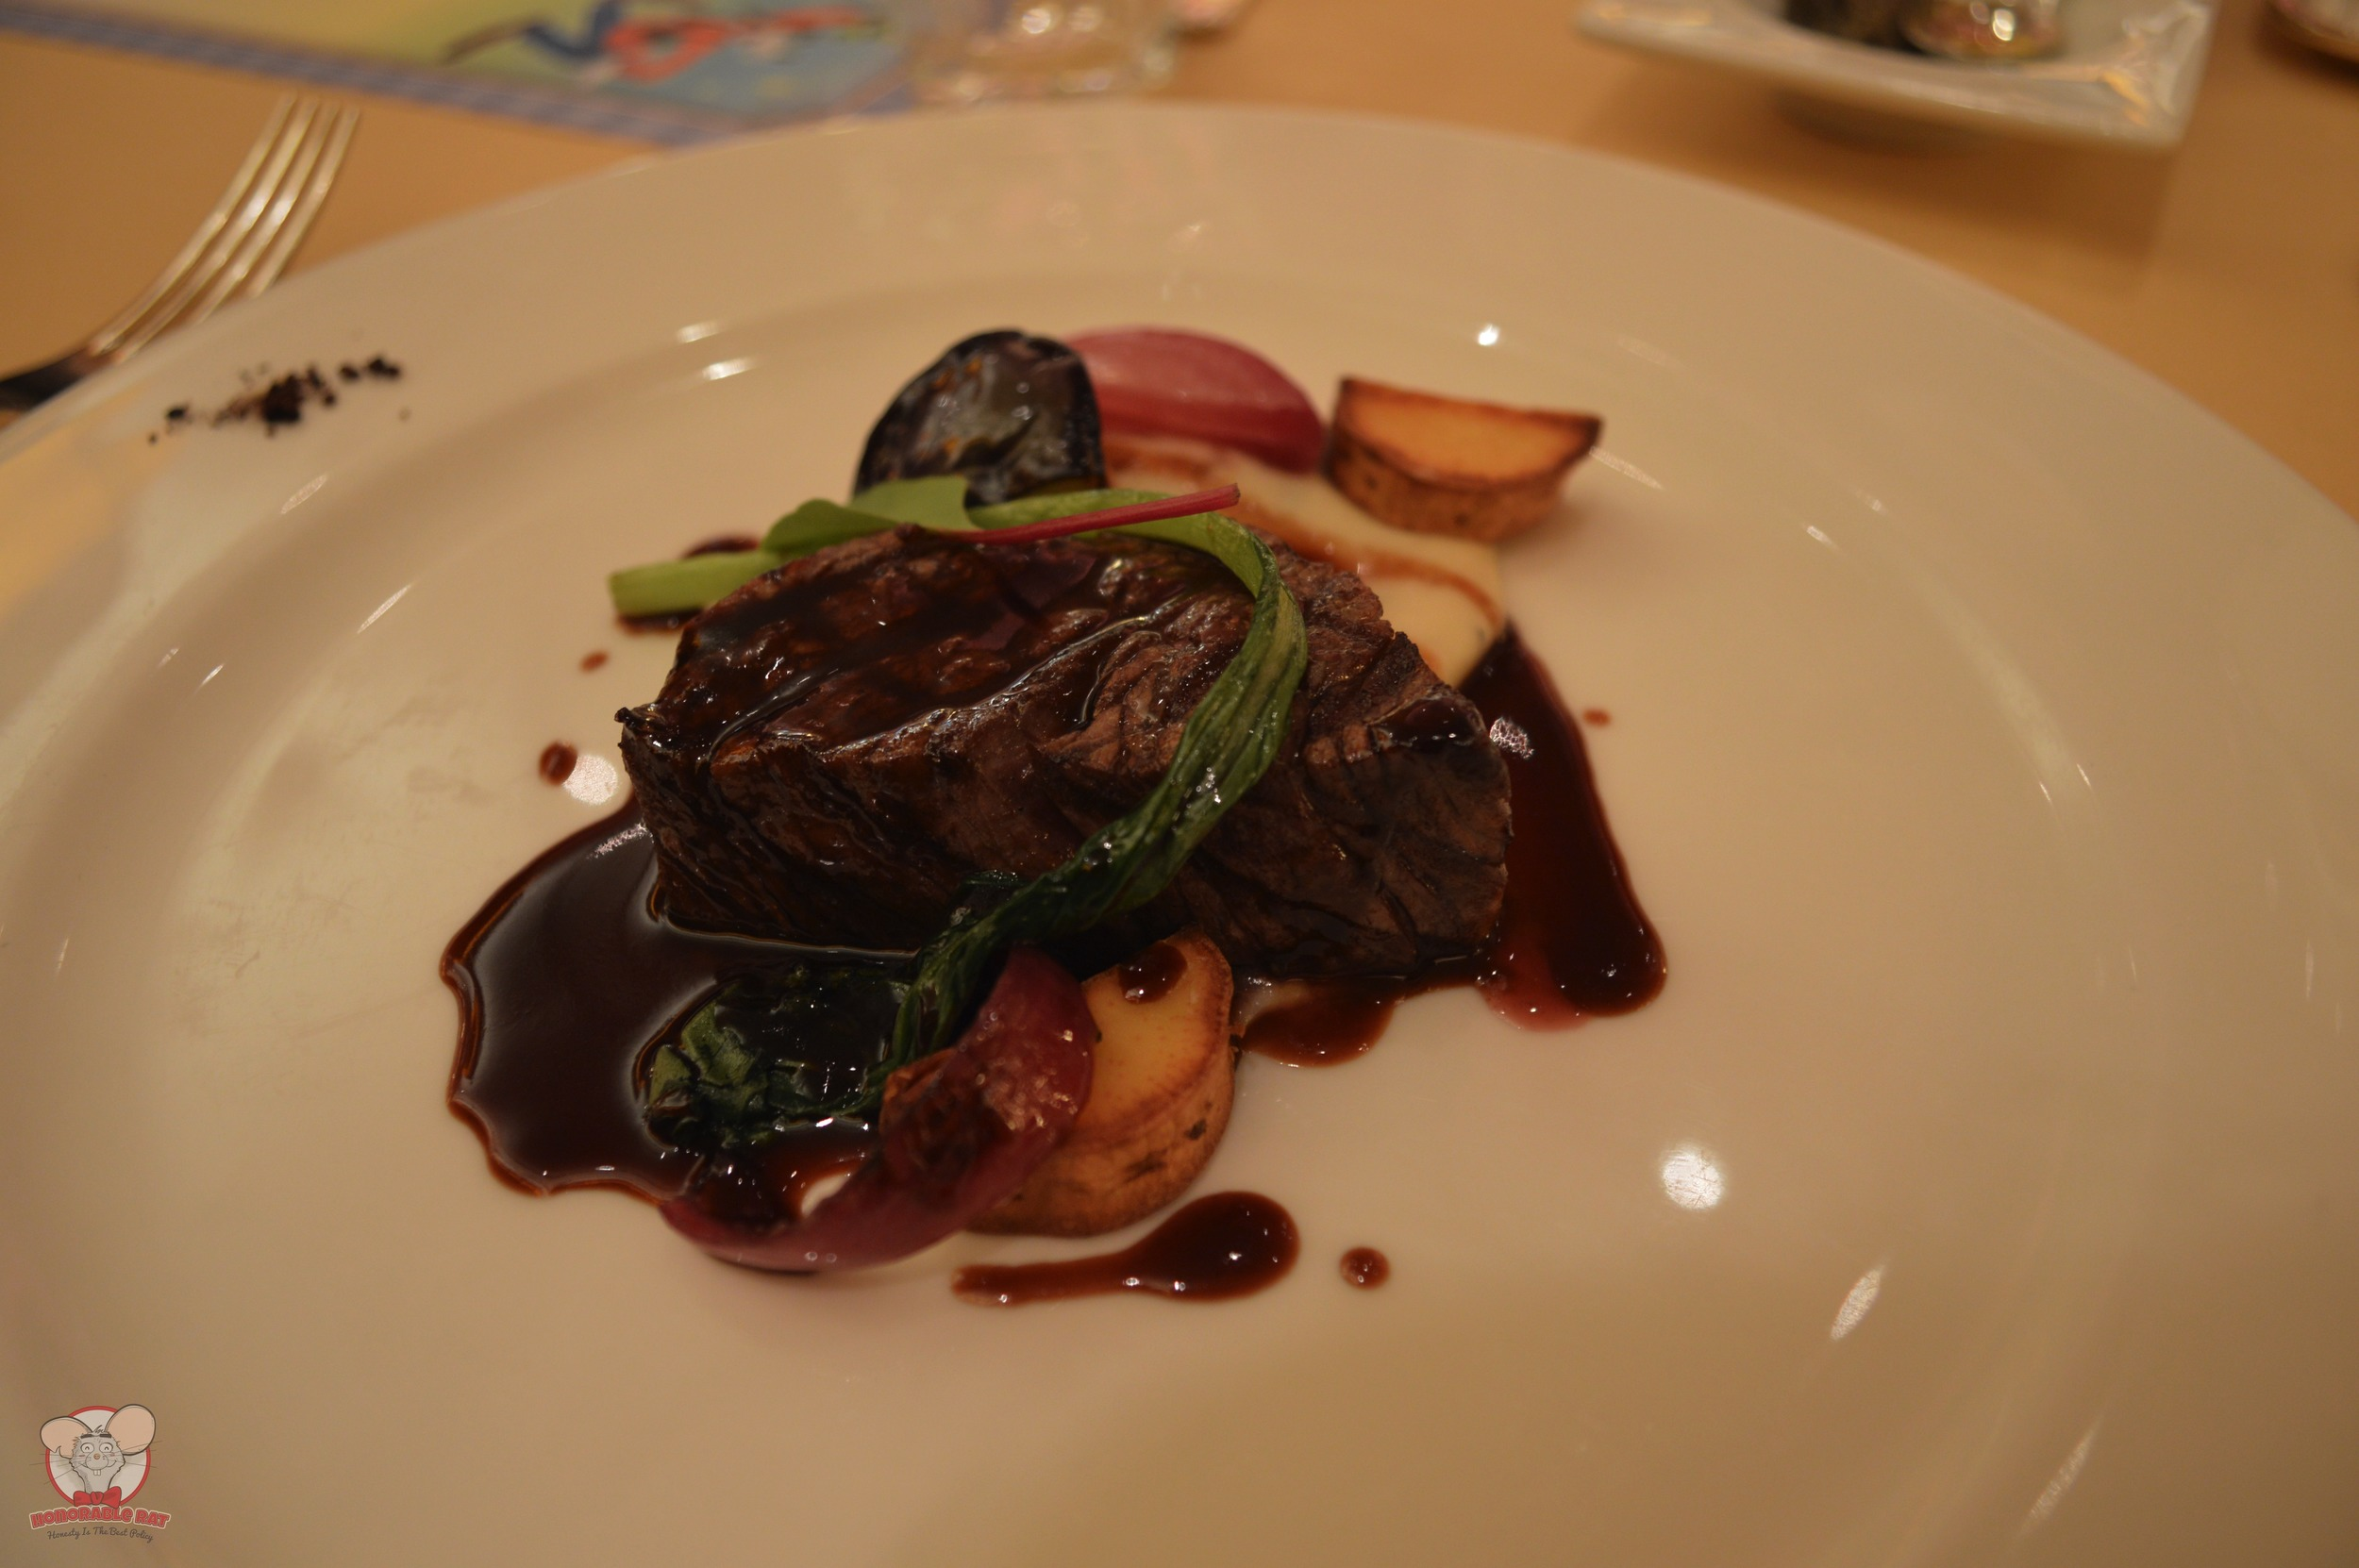 Grilled Beef Tenderloin with Cocoa-Red Wine-Sauce served with Truffled Mashed Potatoes